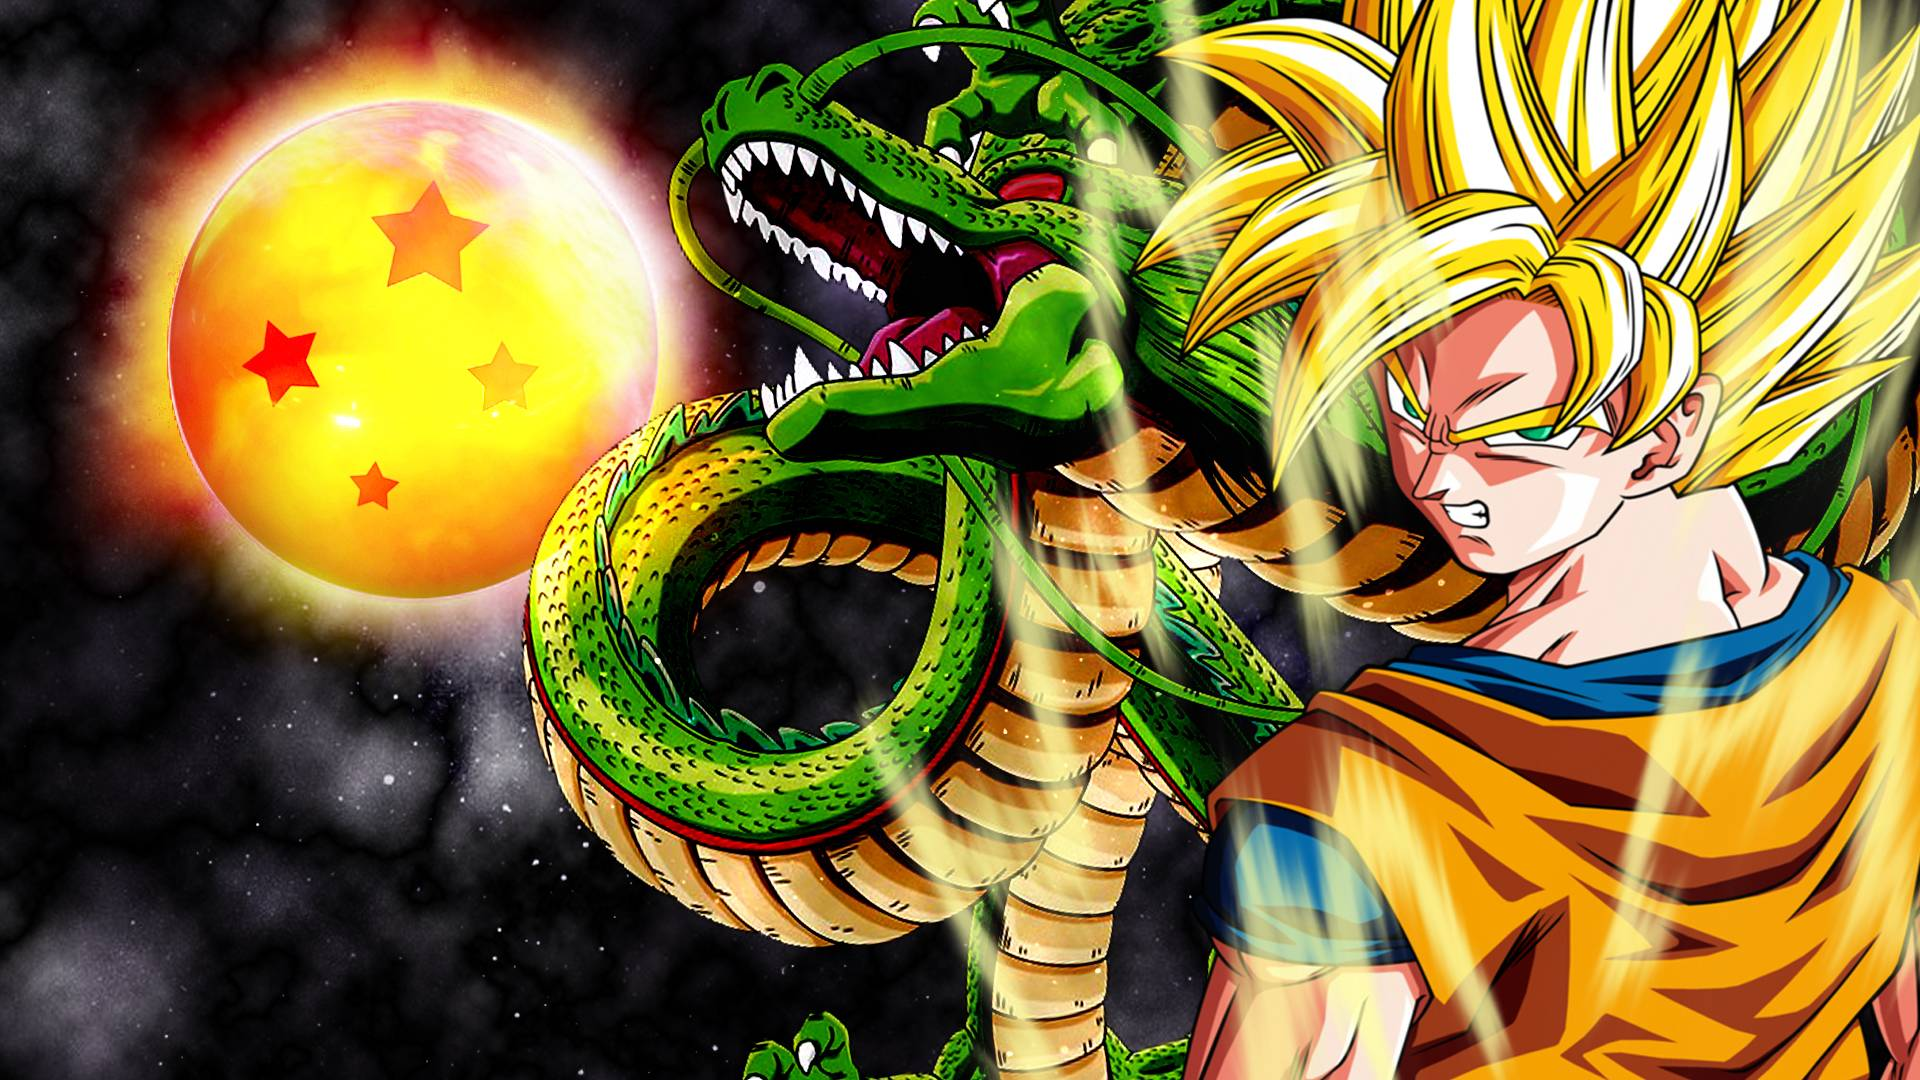 Painel Festa Dragon Ball Z 150x100m No Elo7 Painelkids B57a3b